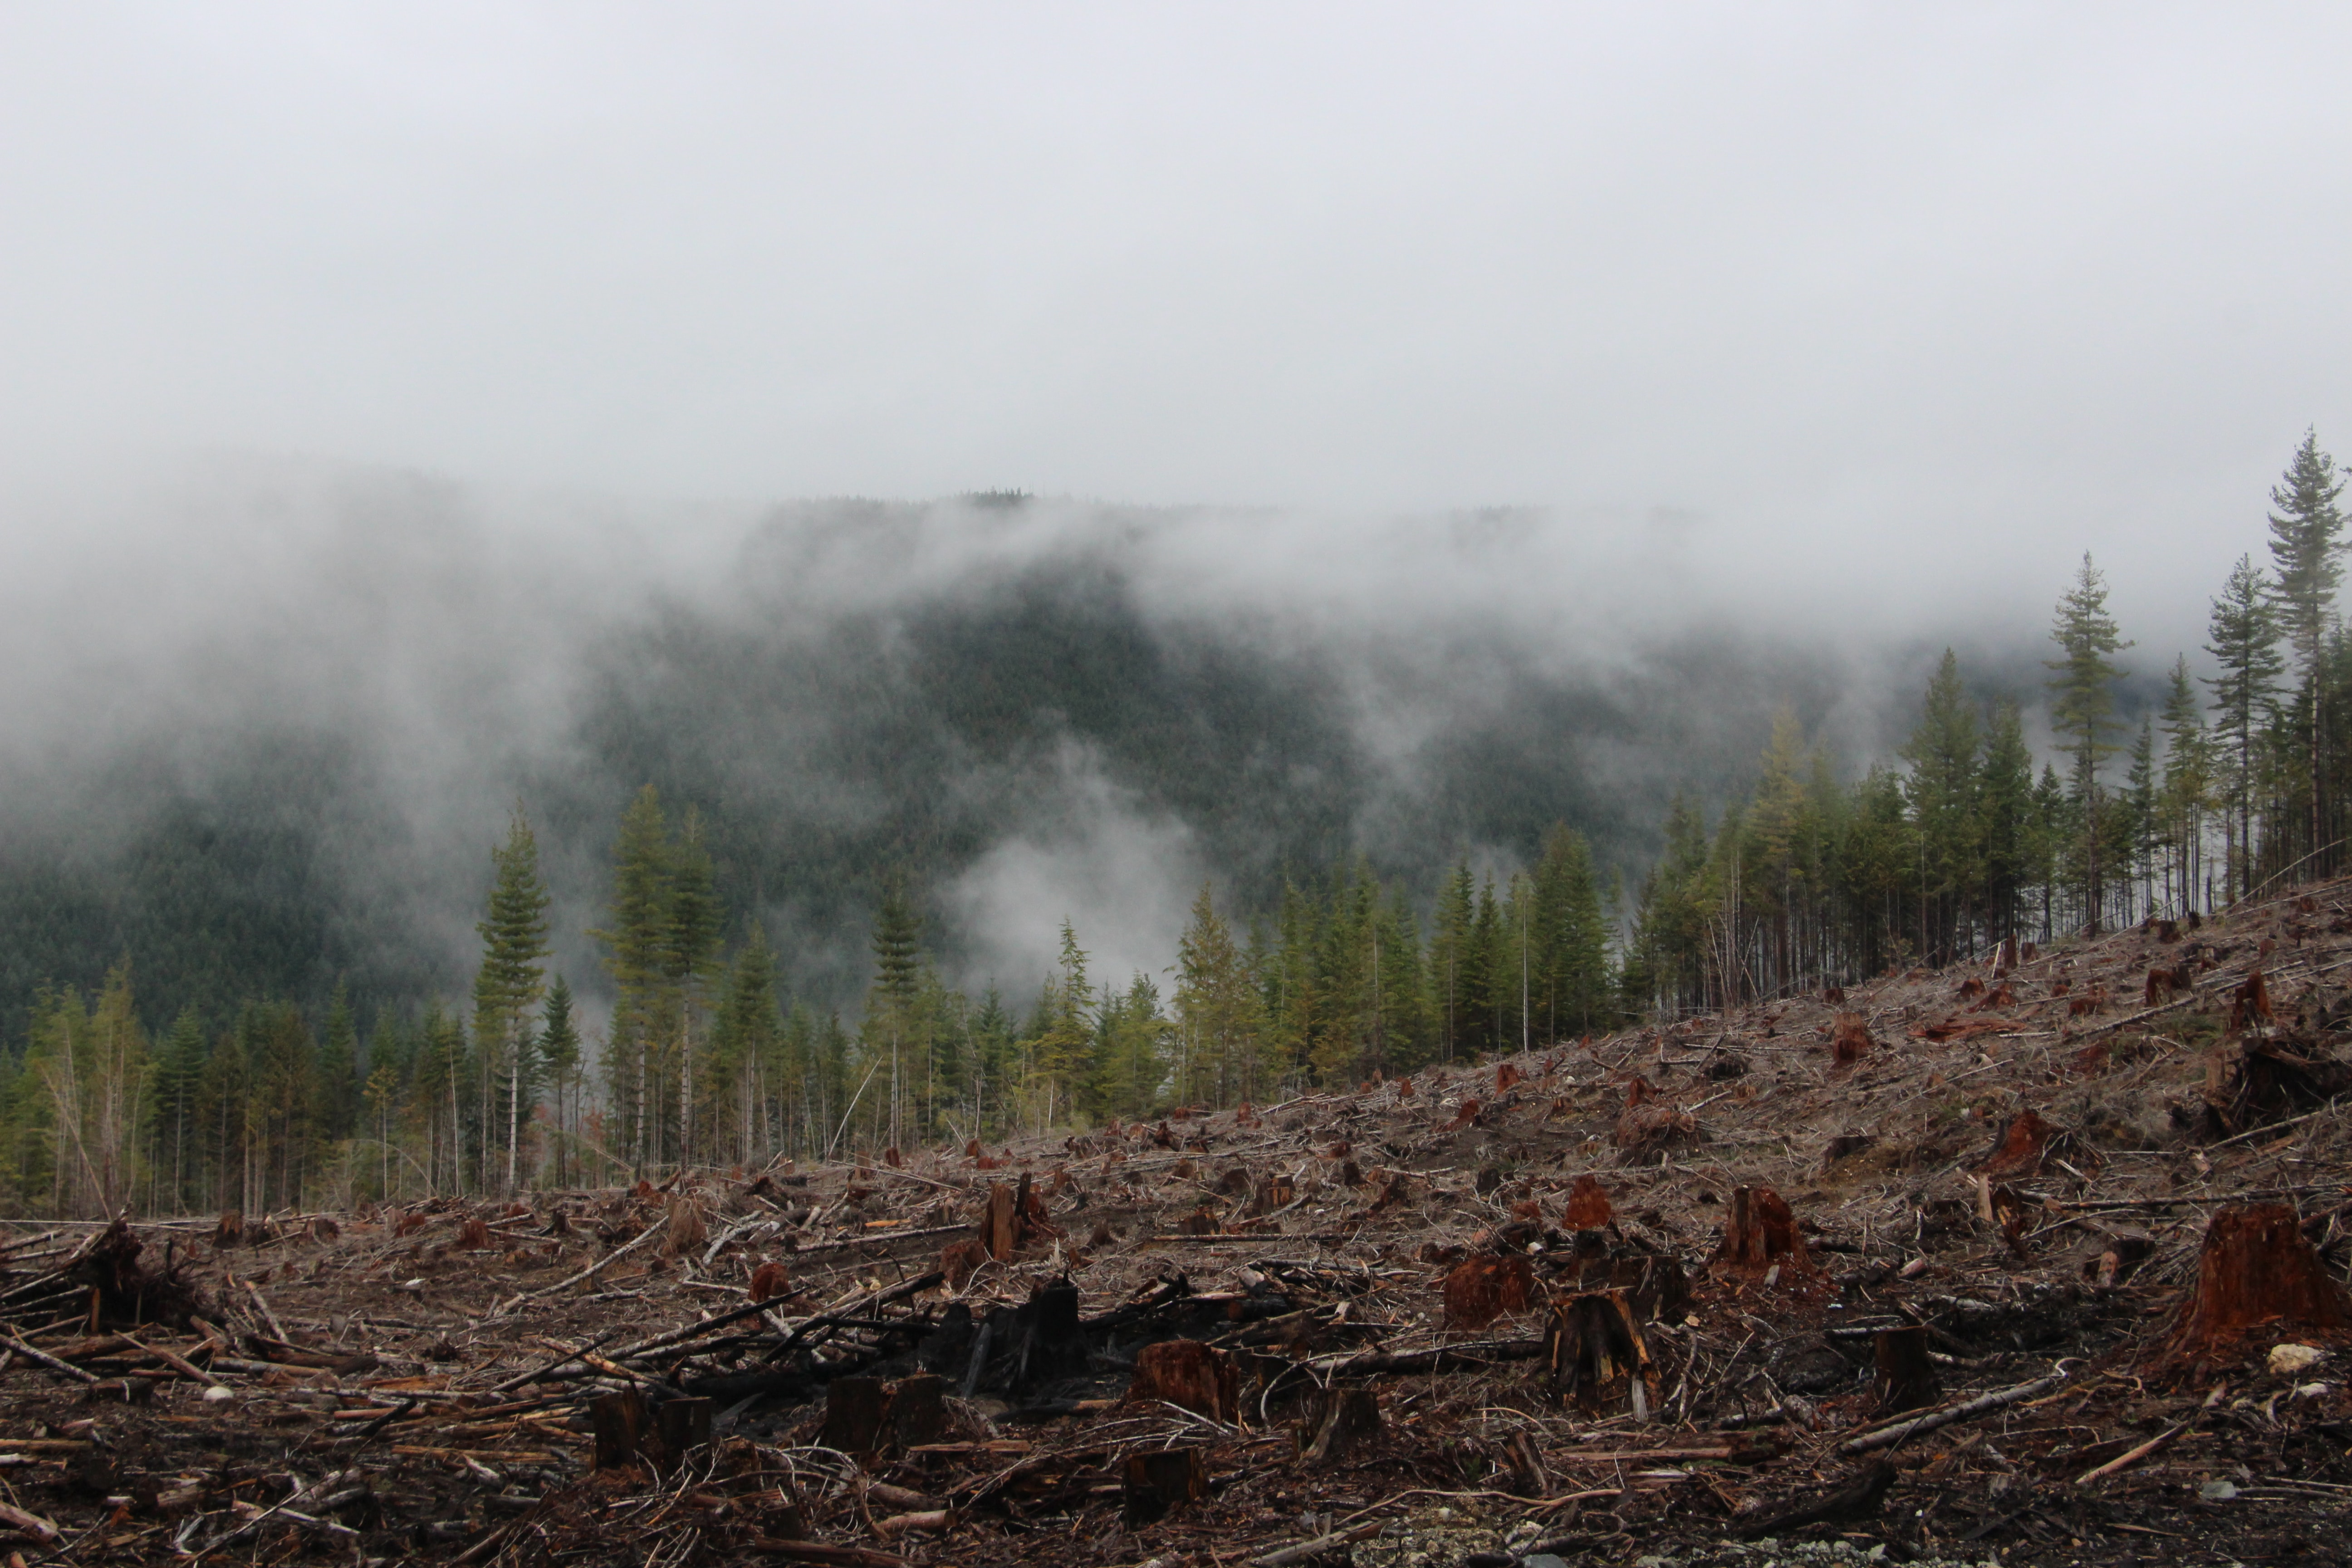 Deforested Amazon rainforest with smoke